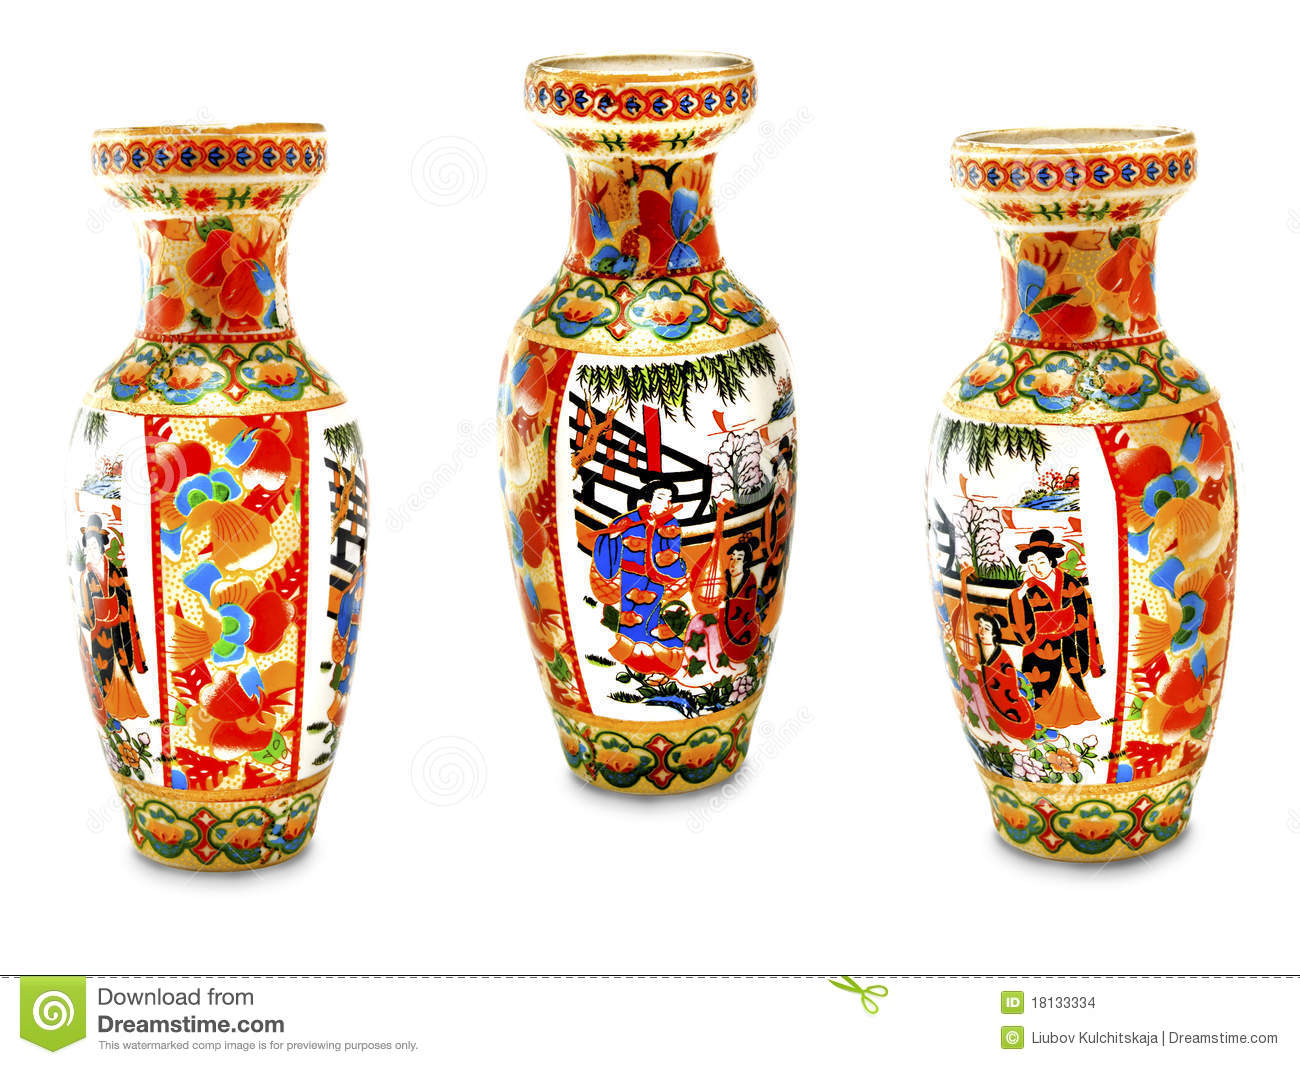 Old chinese vase image collections vases design picture the old chinese vase stock photo image of flower clay 18133334 the old chinese vase reviewsmspy reviewsmspy